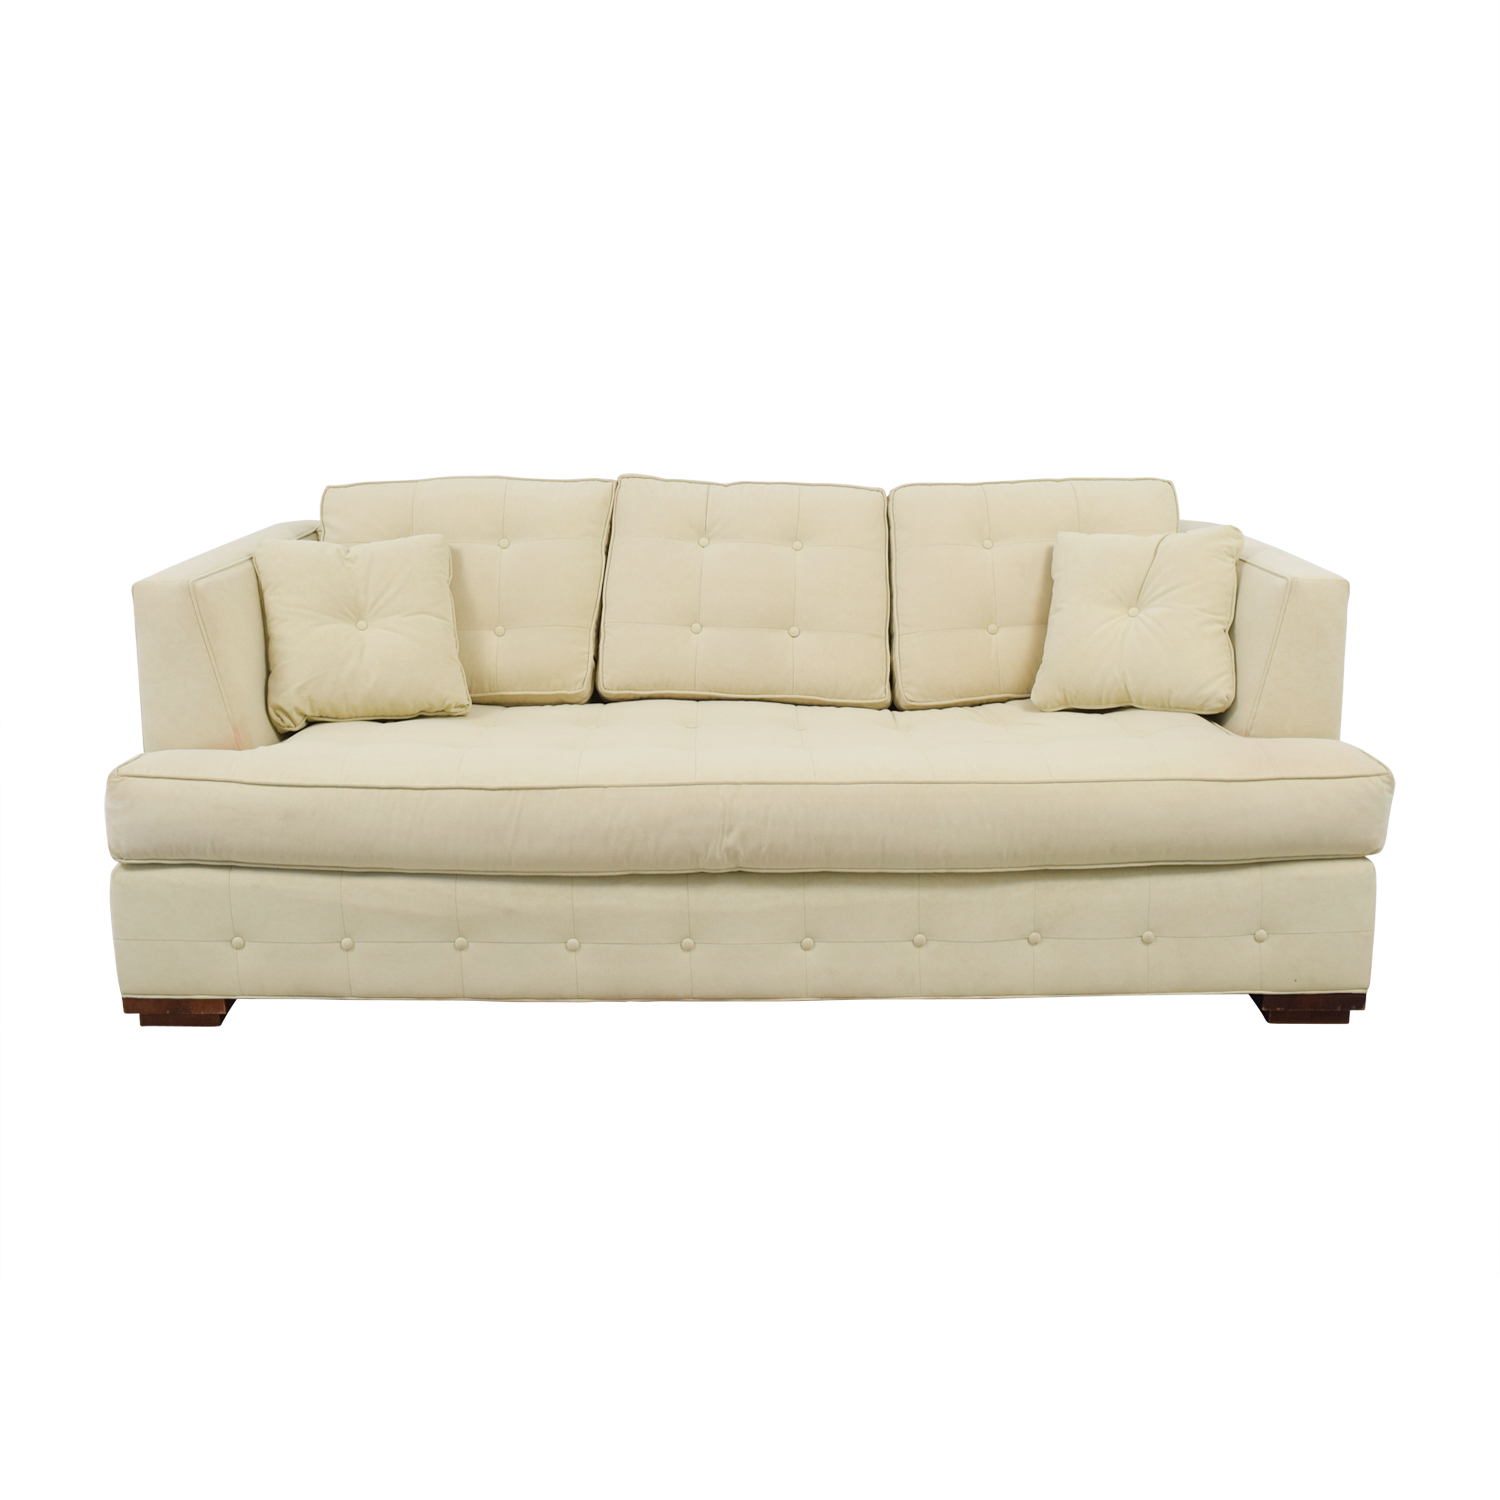 Ethan Allen Ethan Allen Profiles Beige Tufted Single Cushion Sofa price